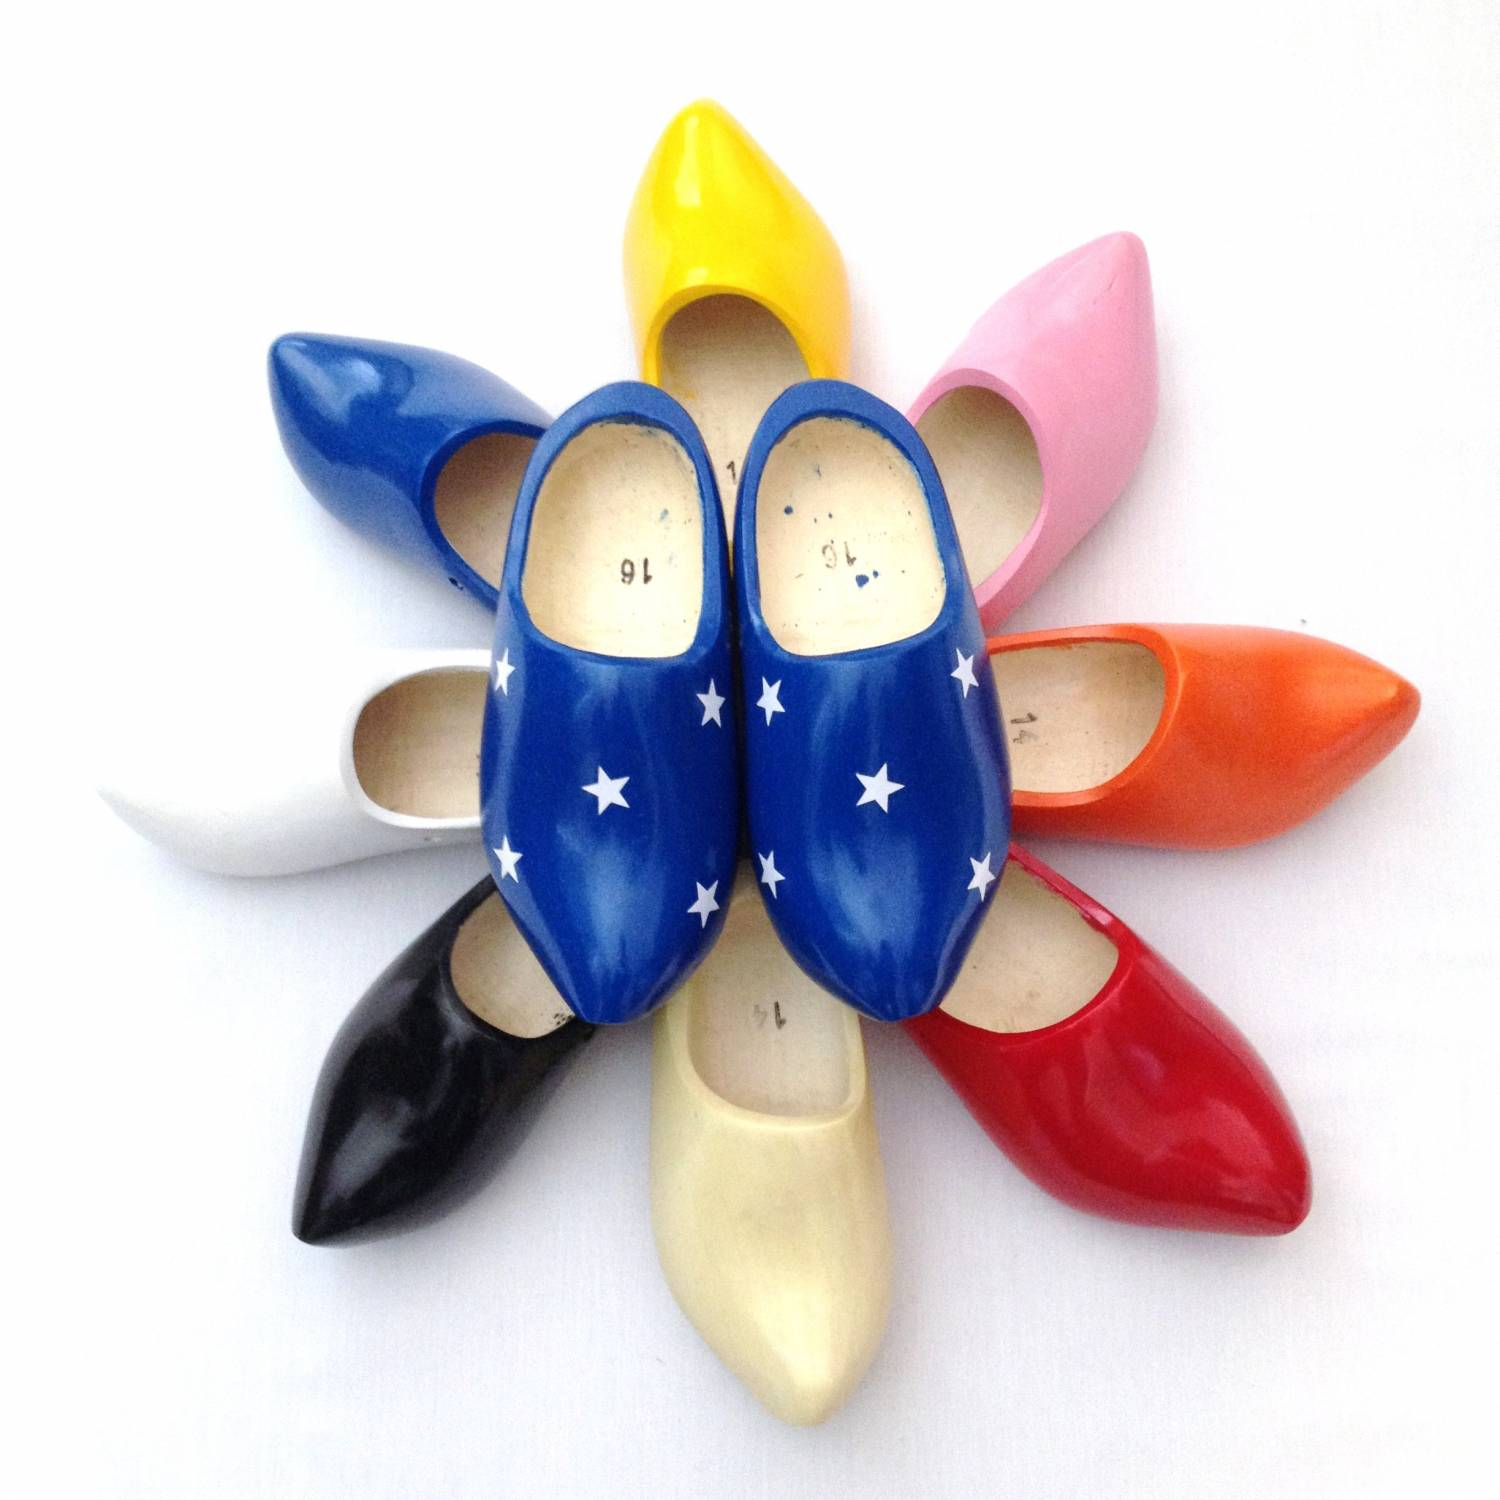 order wooden shoes online without worry